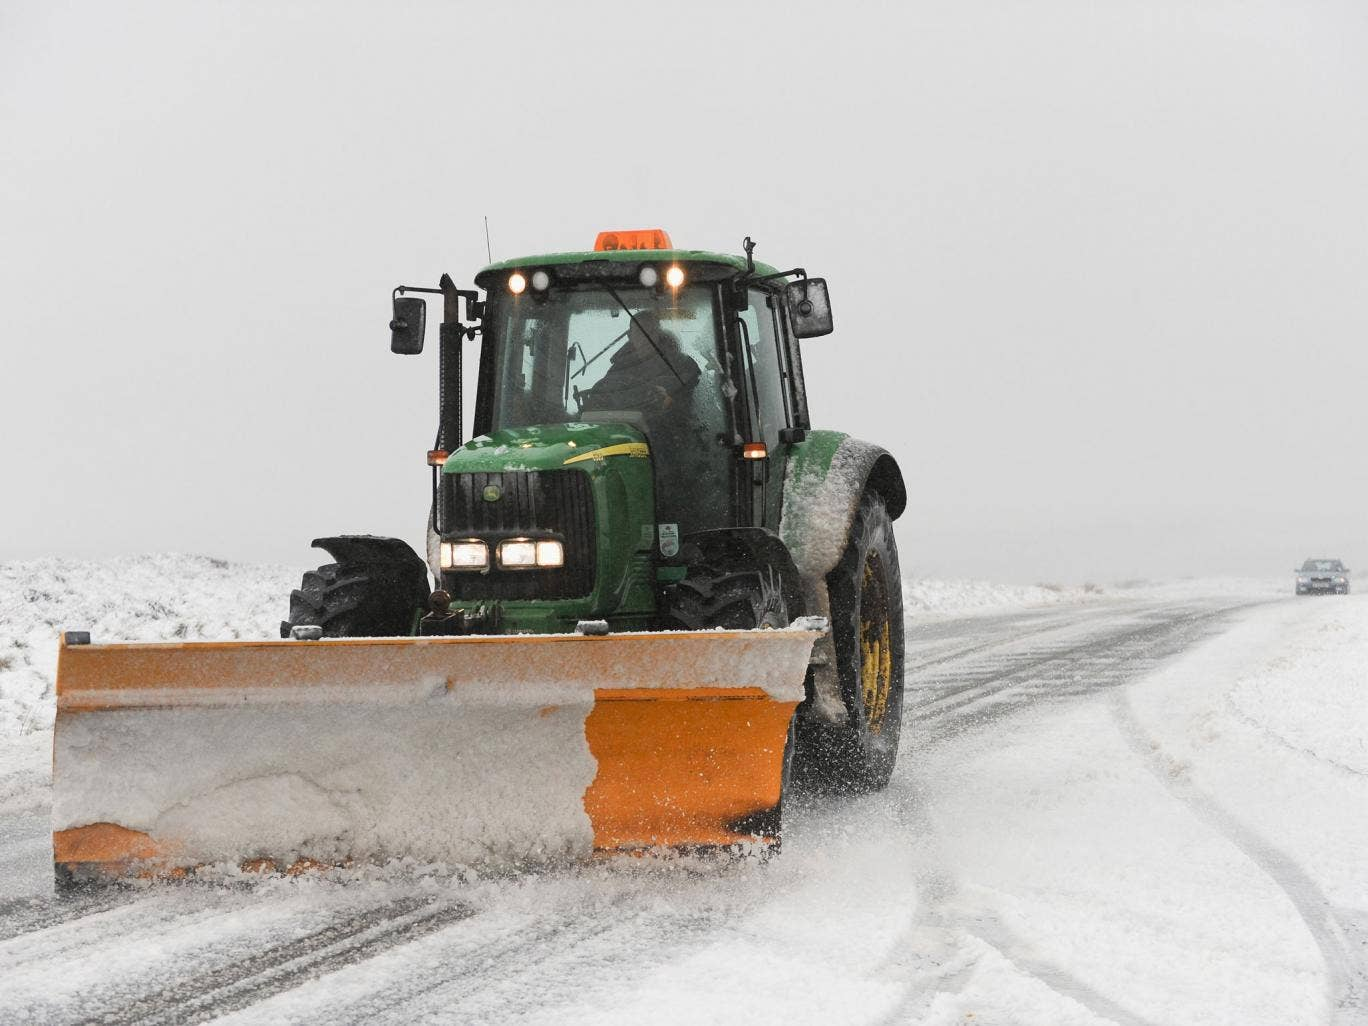 A tractor snow plough tries to keep the road open as heavy snow falls on the North Yorkshire Moors near Castleton